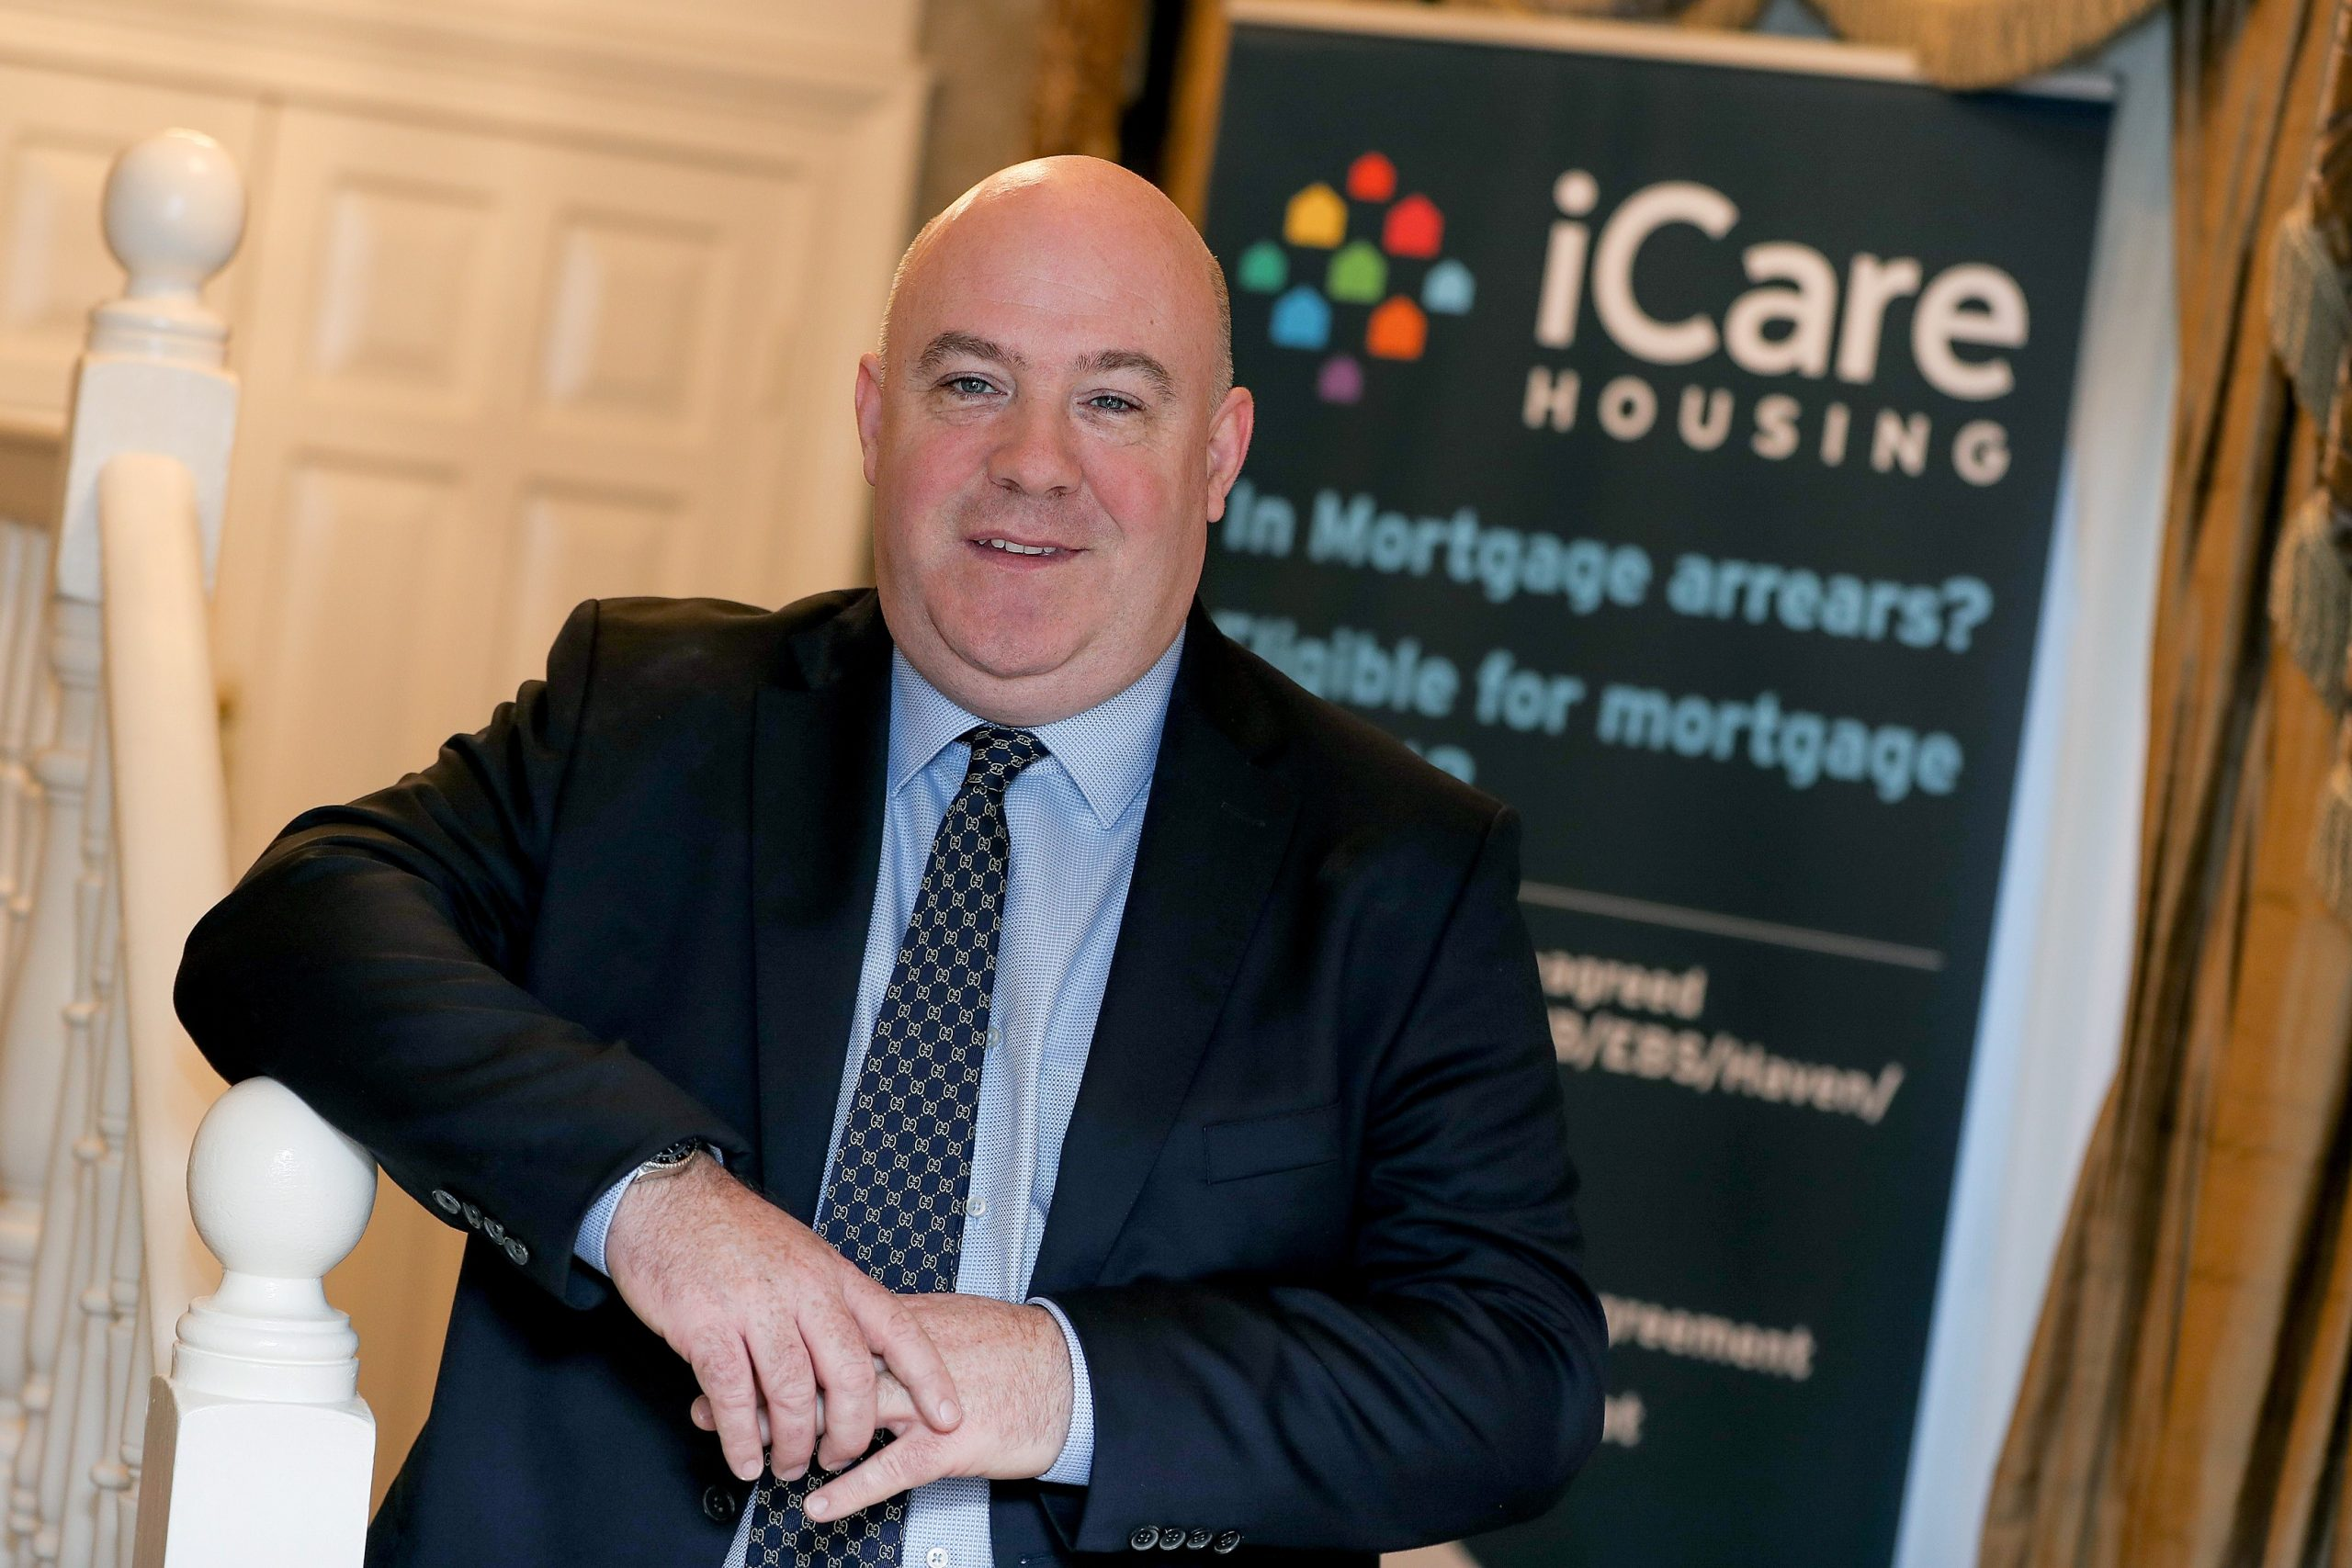 iCare announce the purchase of 28 properties under Mortgage to Rent